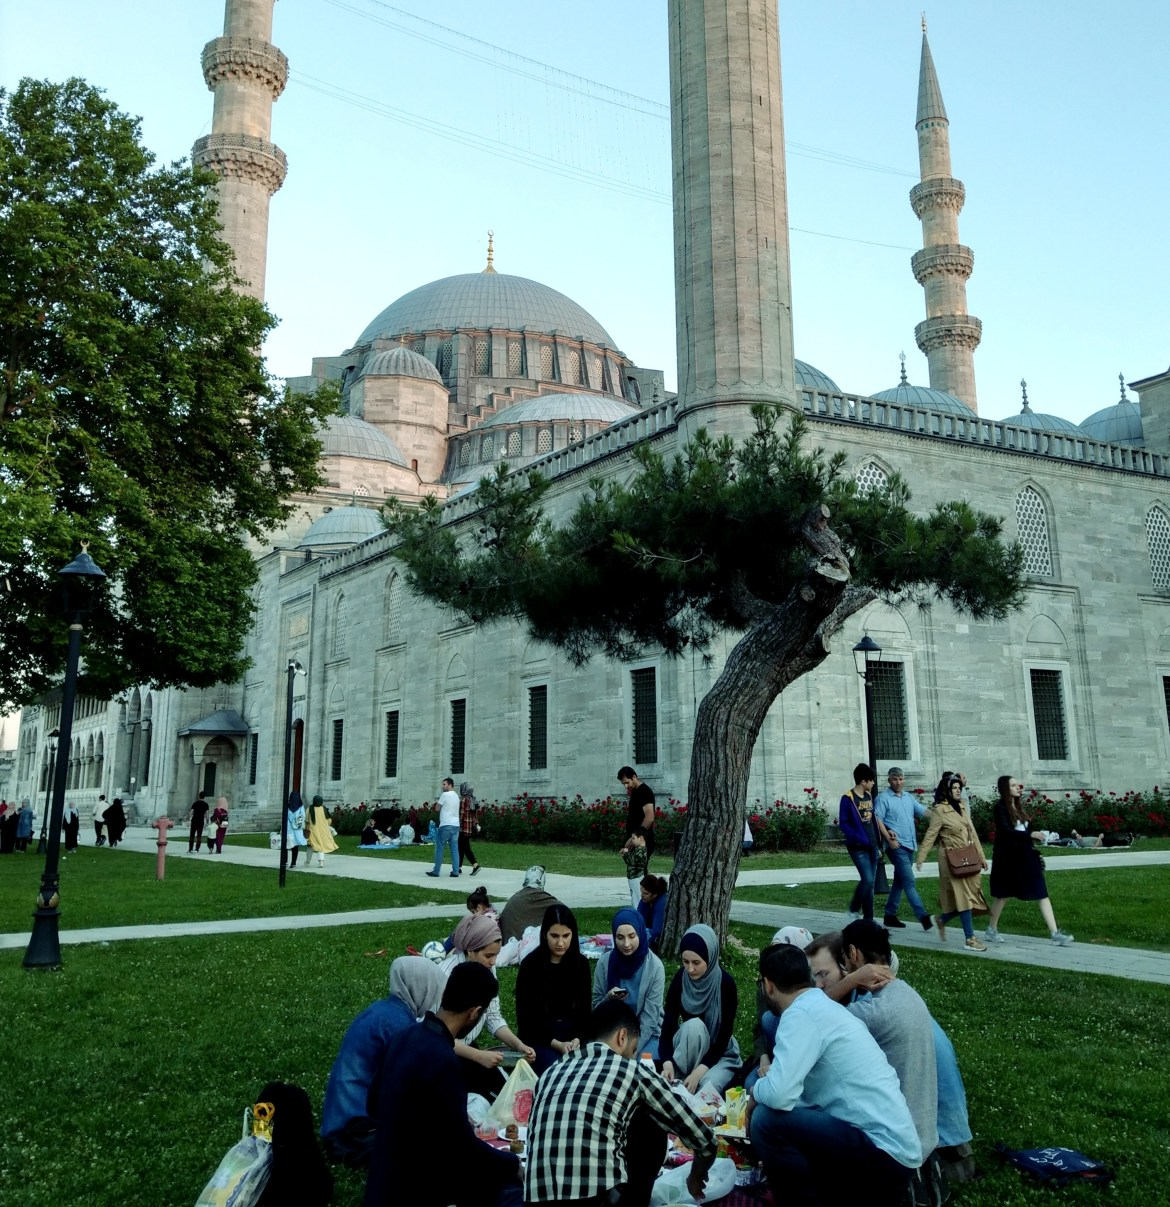 7) Iftar gathering at Suleimaniye Mosque